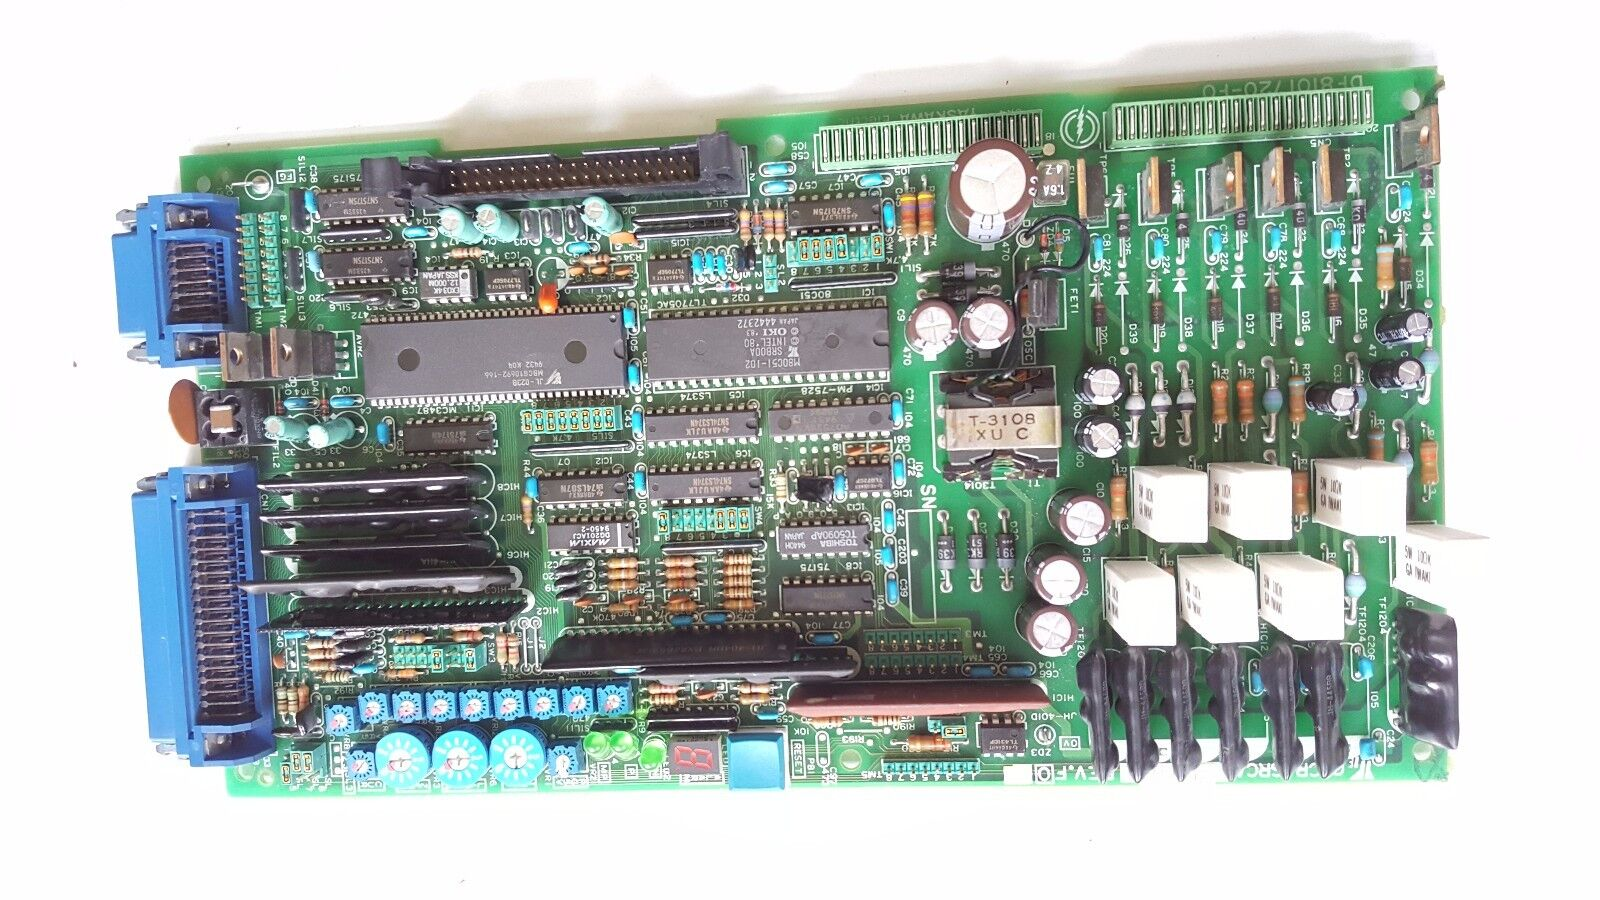 Yaskawa Power Supply Board Cacr Srca30bbb Rev F02 For Sale Online Images, Photos, Reviews